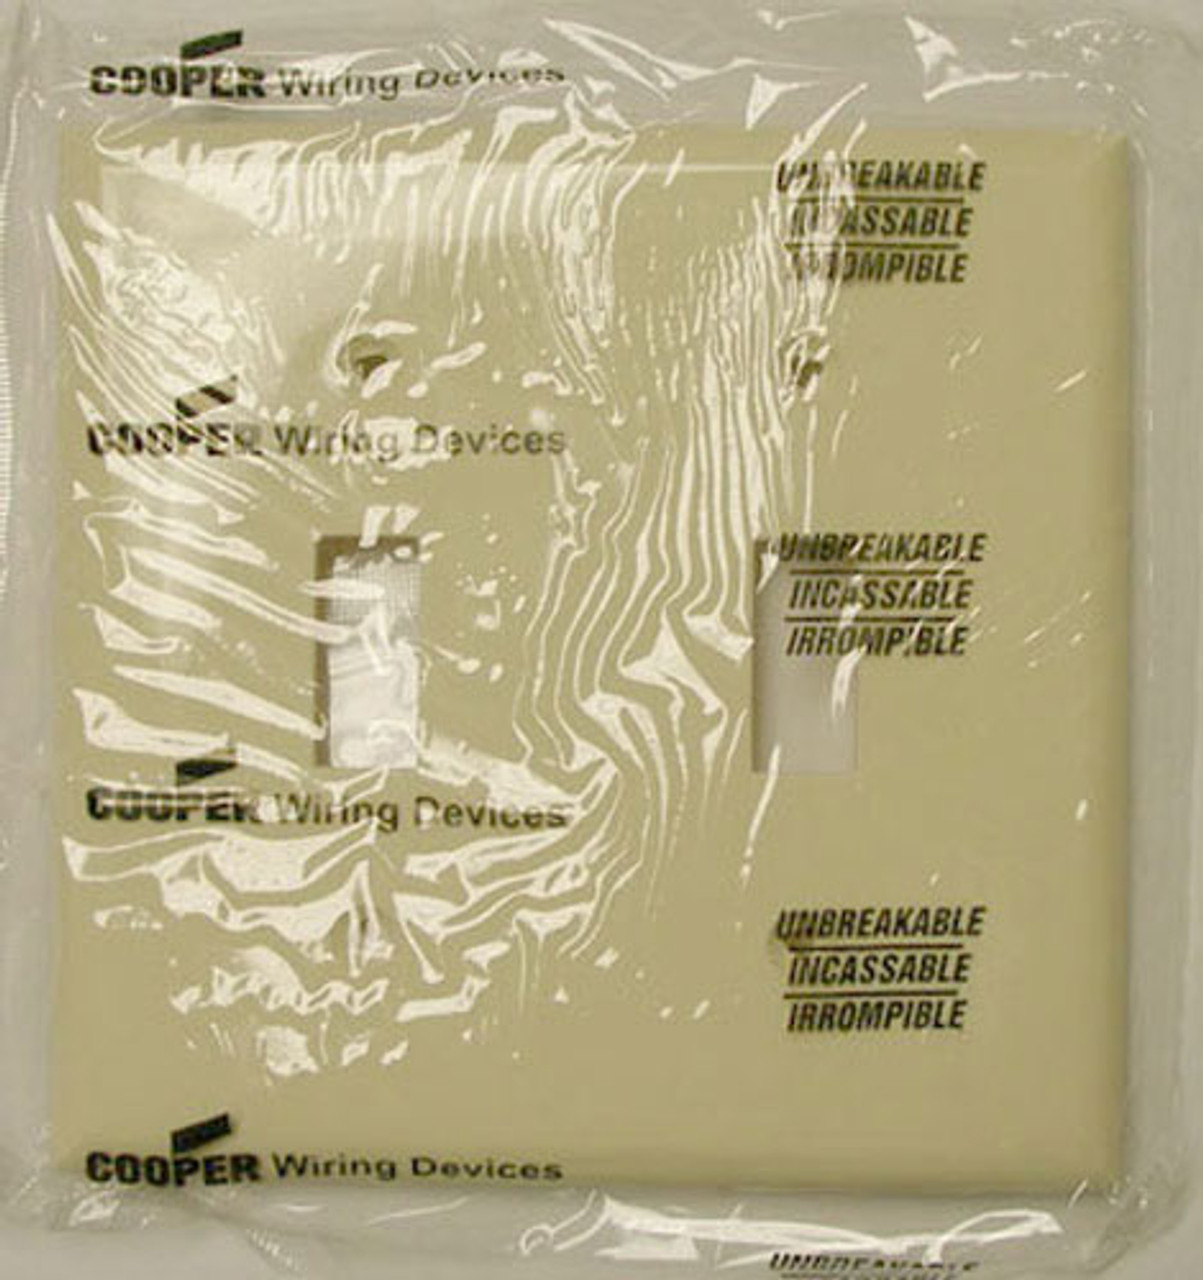 Cooper 5139A 2 Gang Almond Switch Plate (Lot of 25) - New